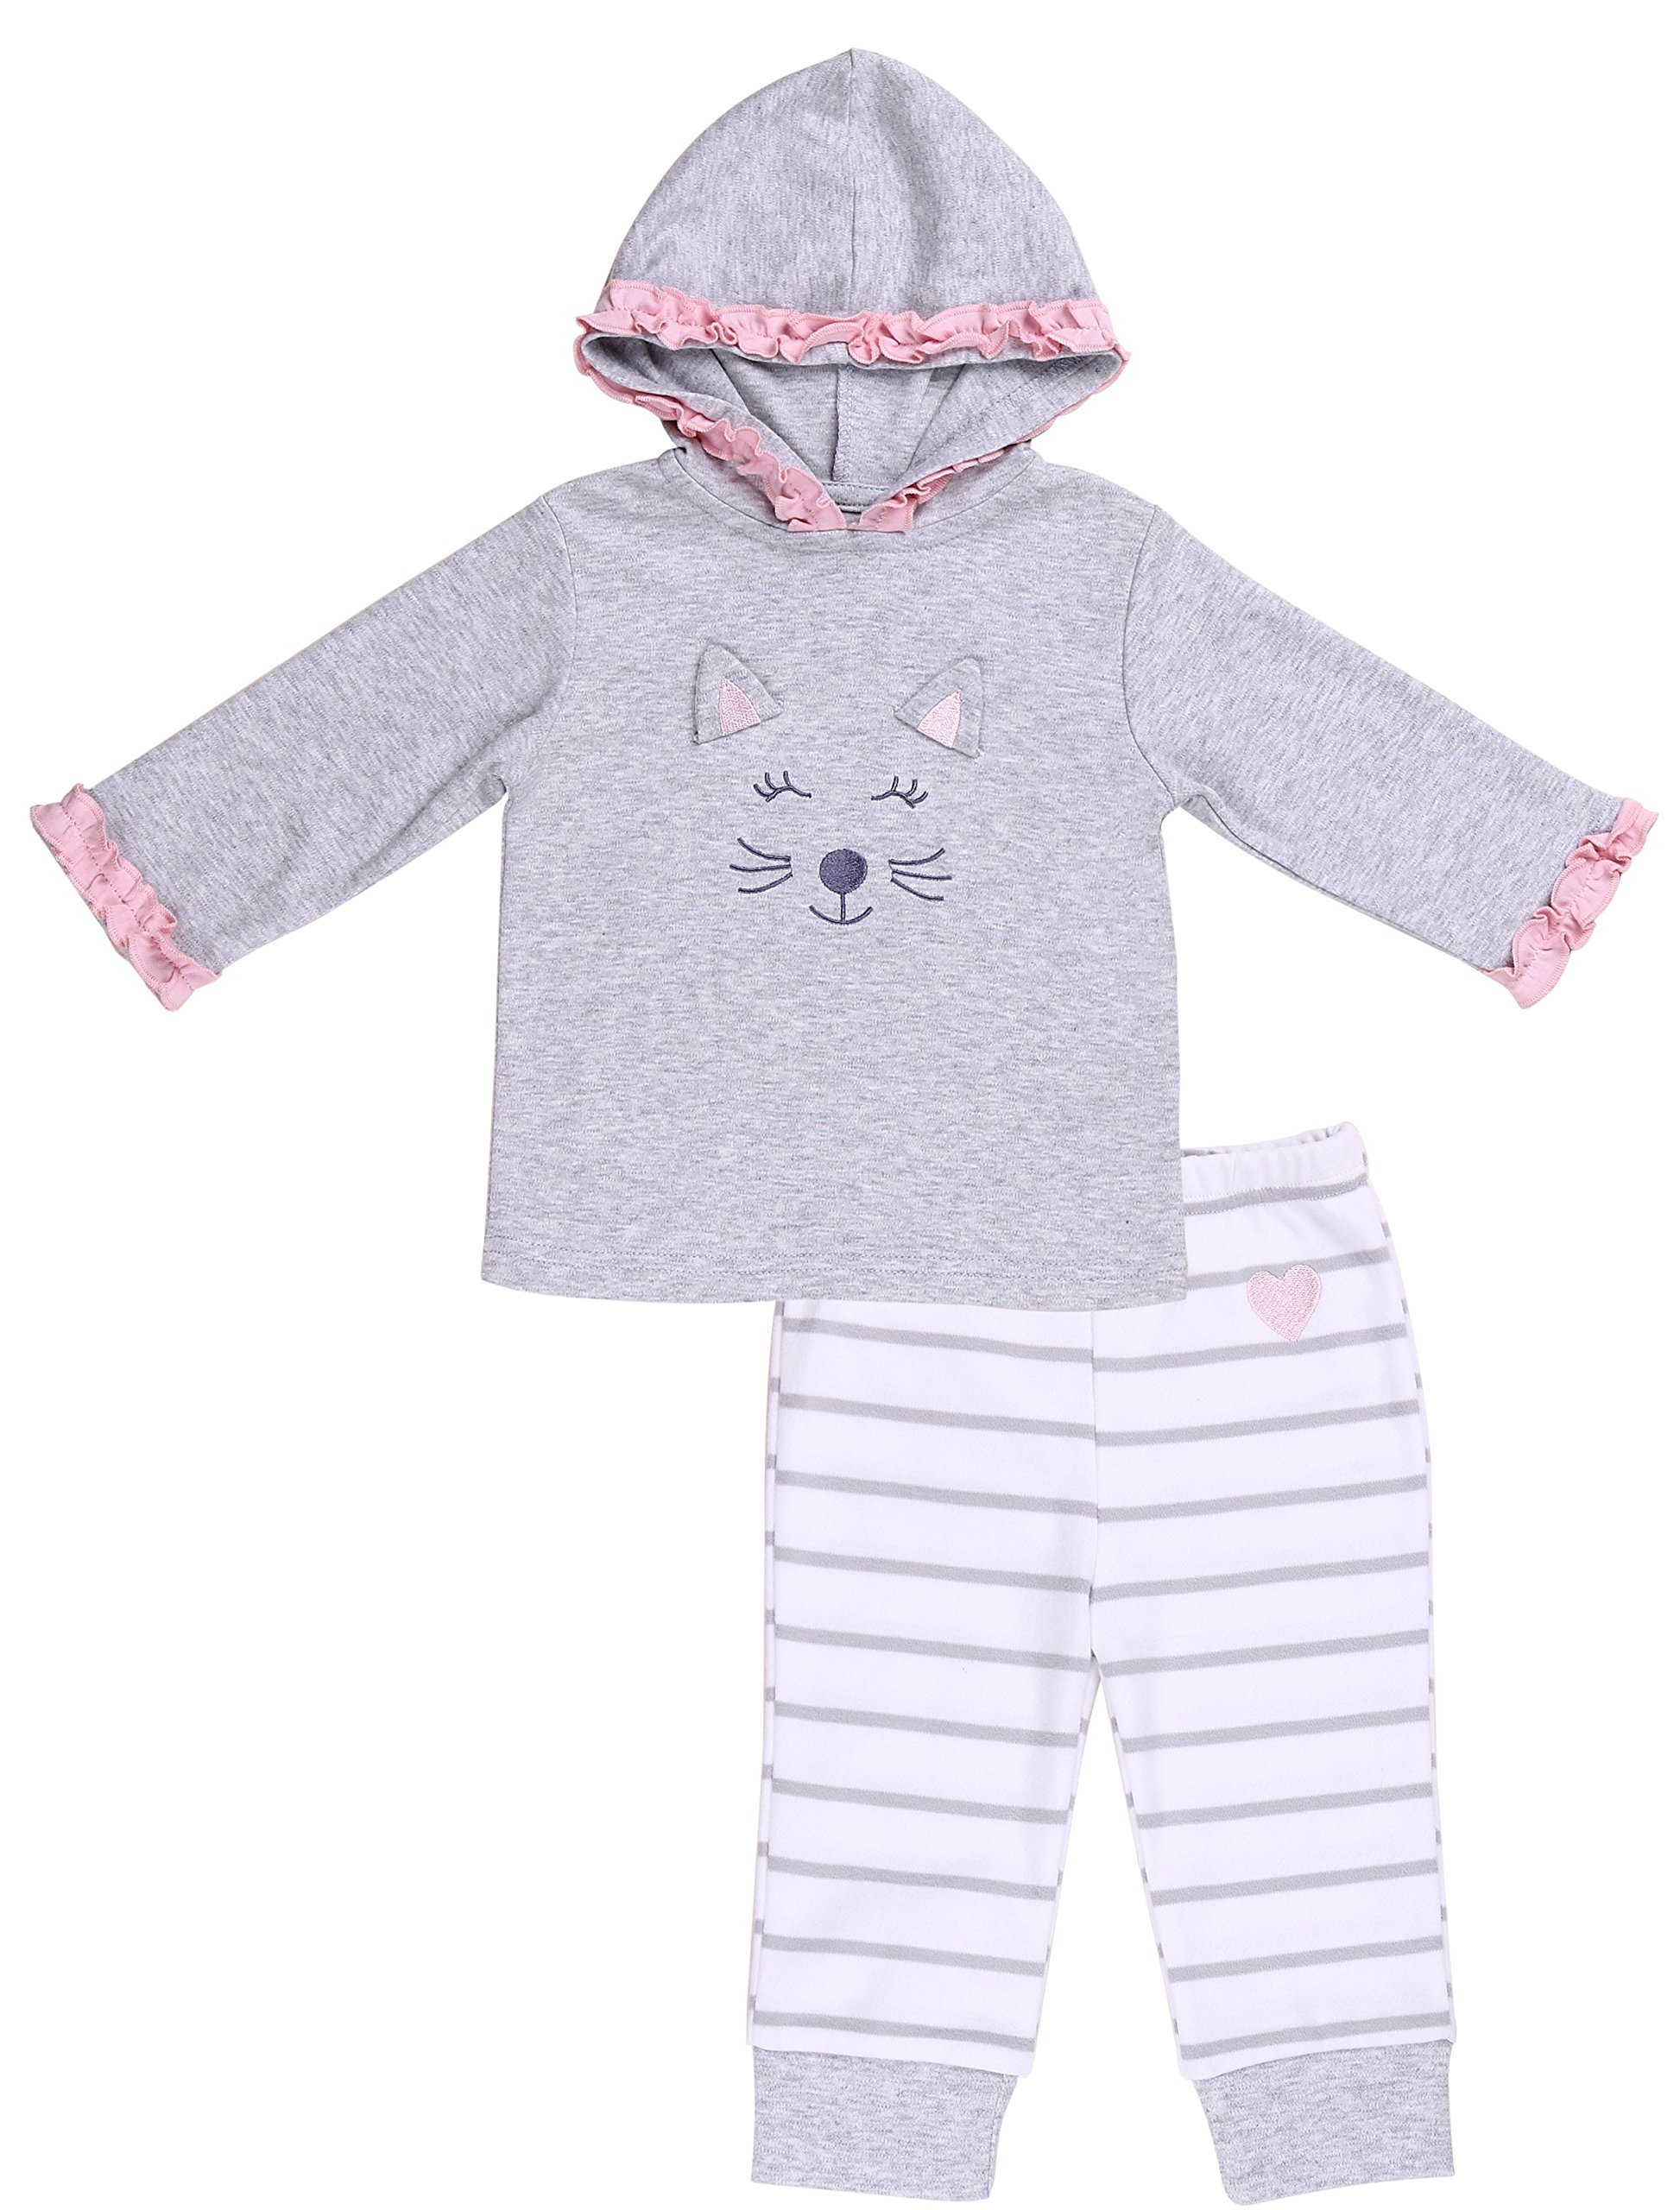 CDM product Asher and Olivia Baby Girls' 2-Piece Hoodie with Pants big image